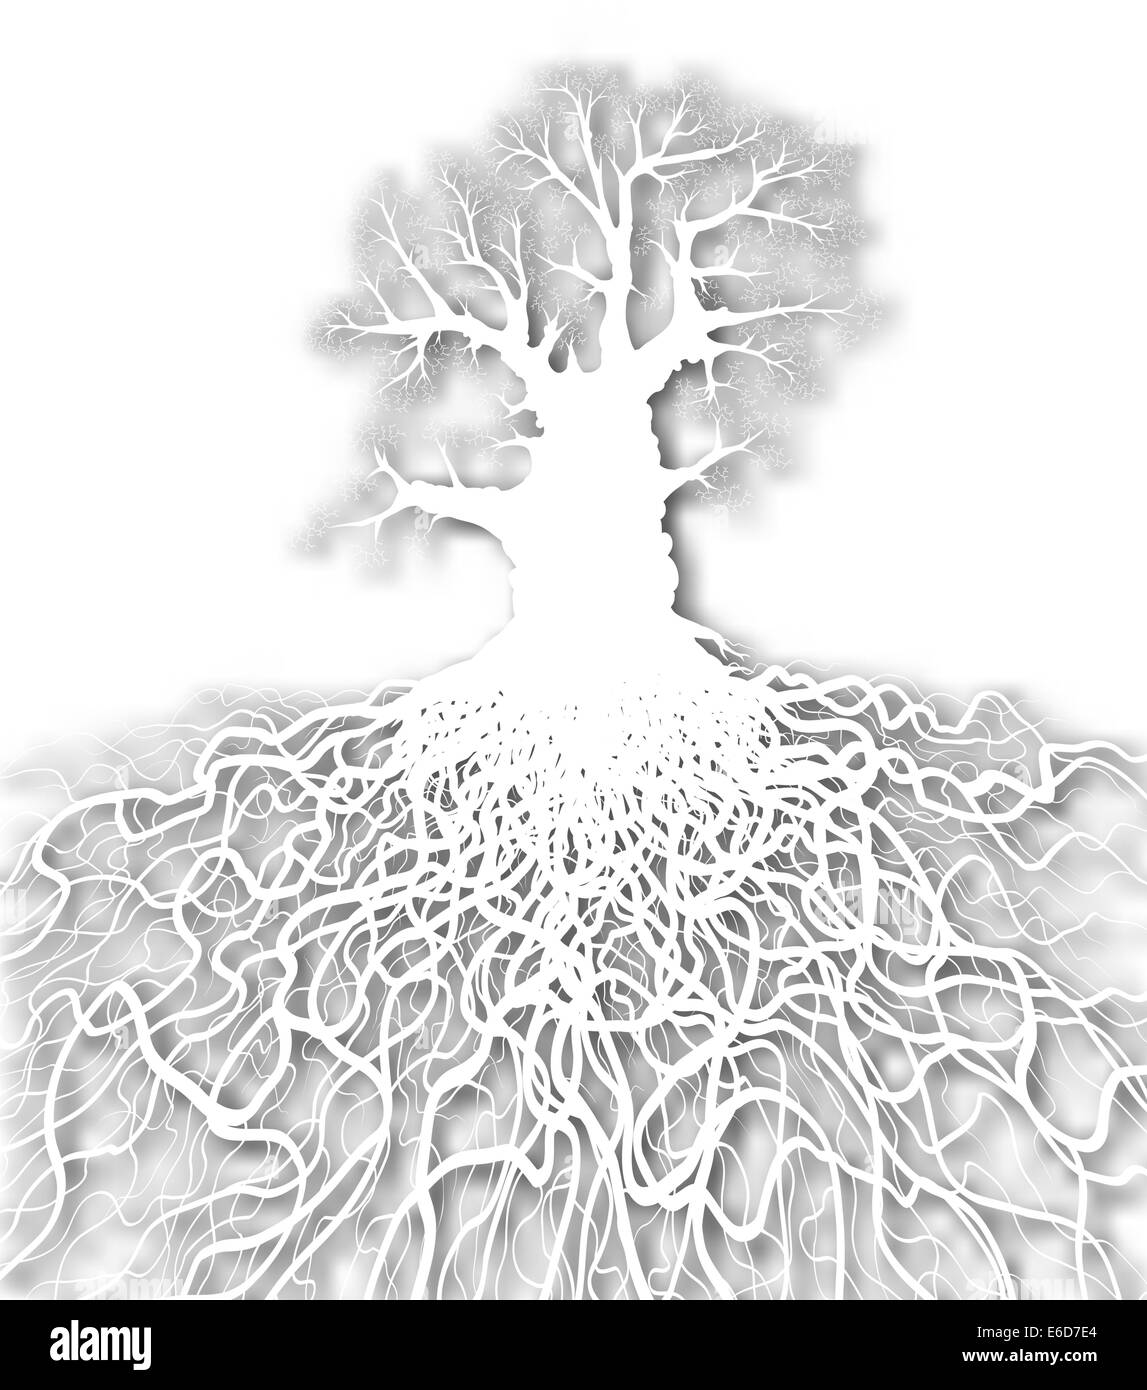 Editable vector cutout of a leafless oak tree plus root system with background made using a gradient mesh - Stock Image